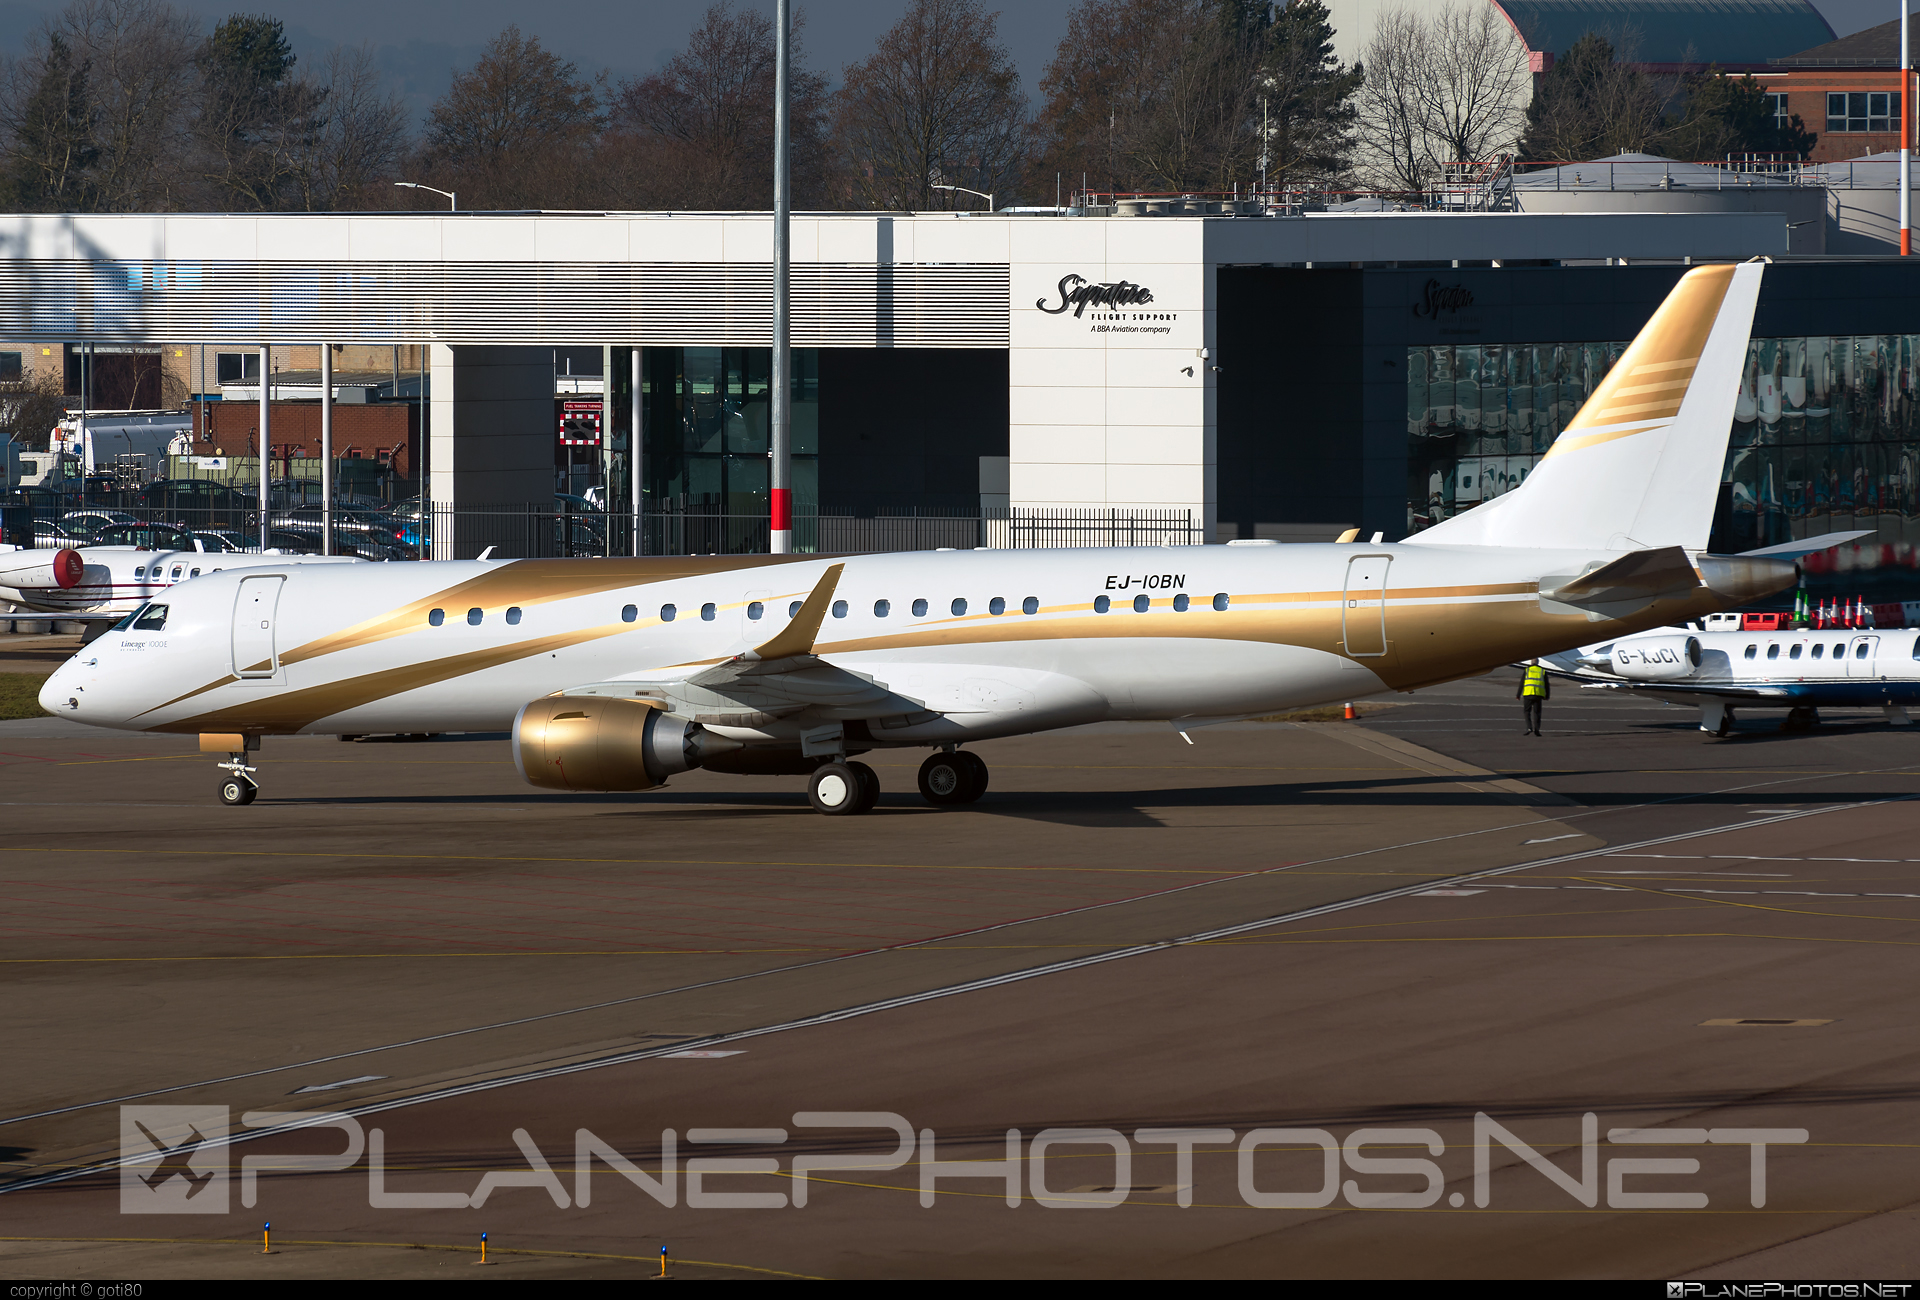 Embraer Lineage 1000 - EJ-IOBN operated by GainJet Ireland #embraer #embraerlineage #embraerlineage1000 #gainjet #gainjetireland #lineage1000